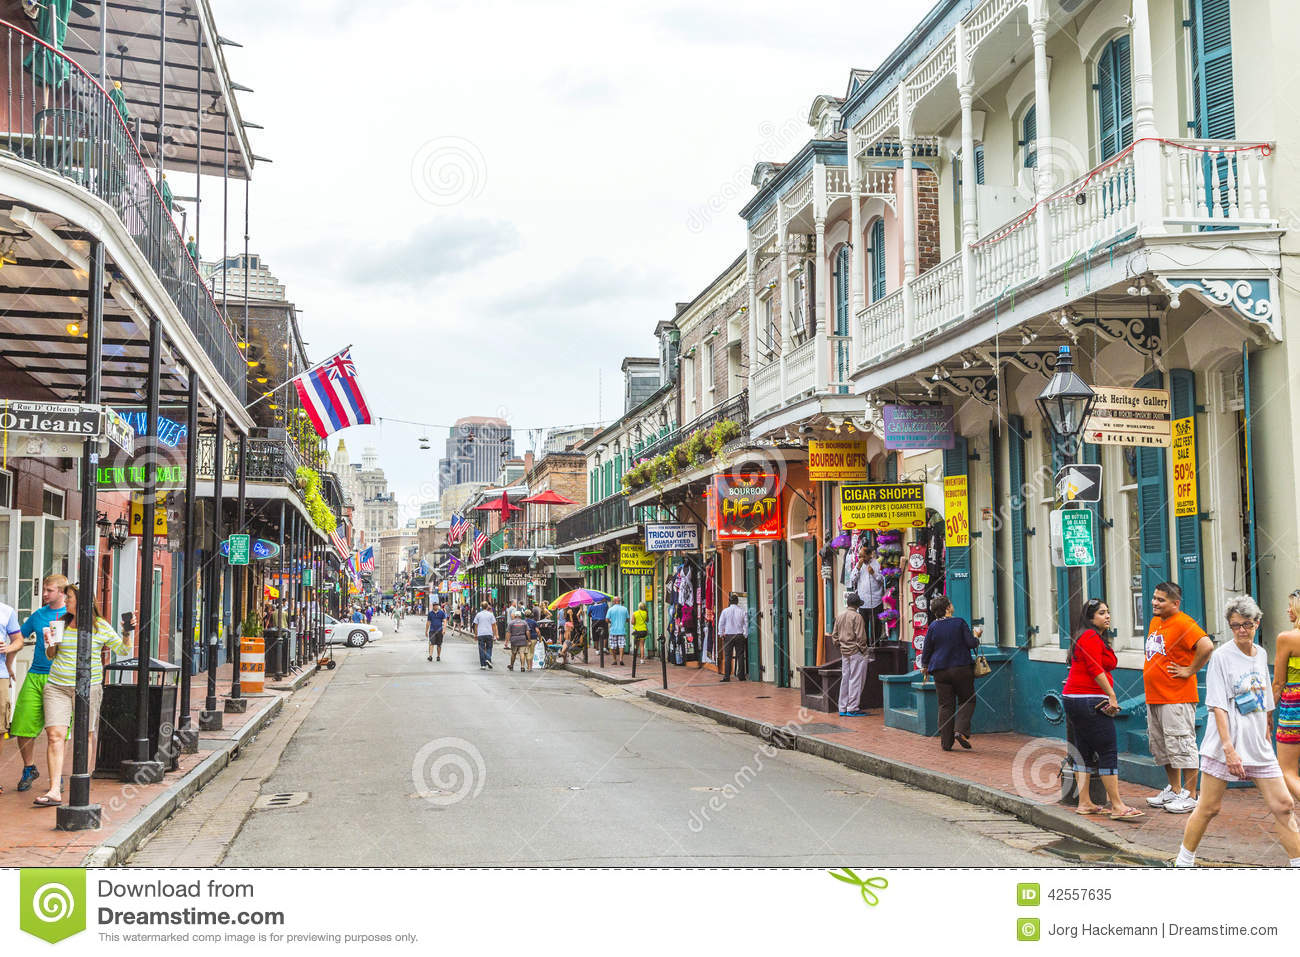 NEW ORLEANS, LOUISIANA USA - JULY 16, 2013: historic buildings in the ...